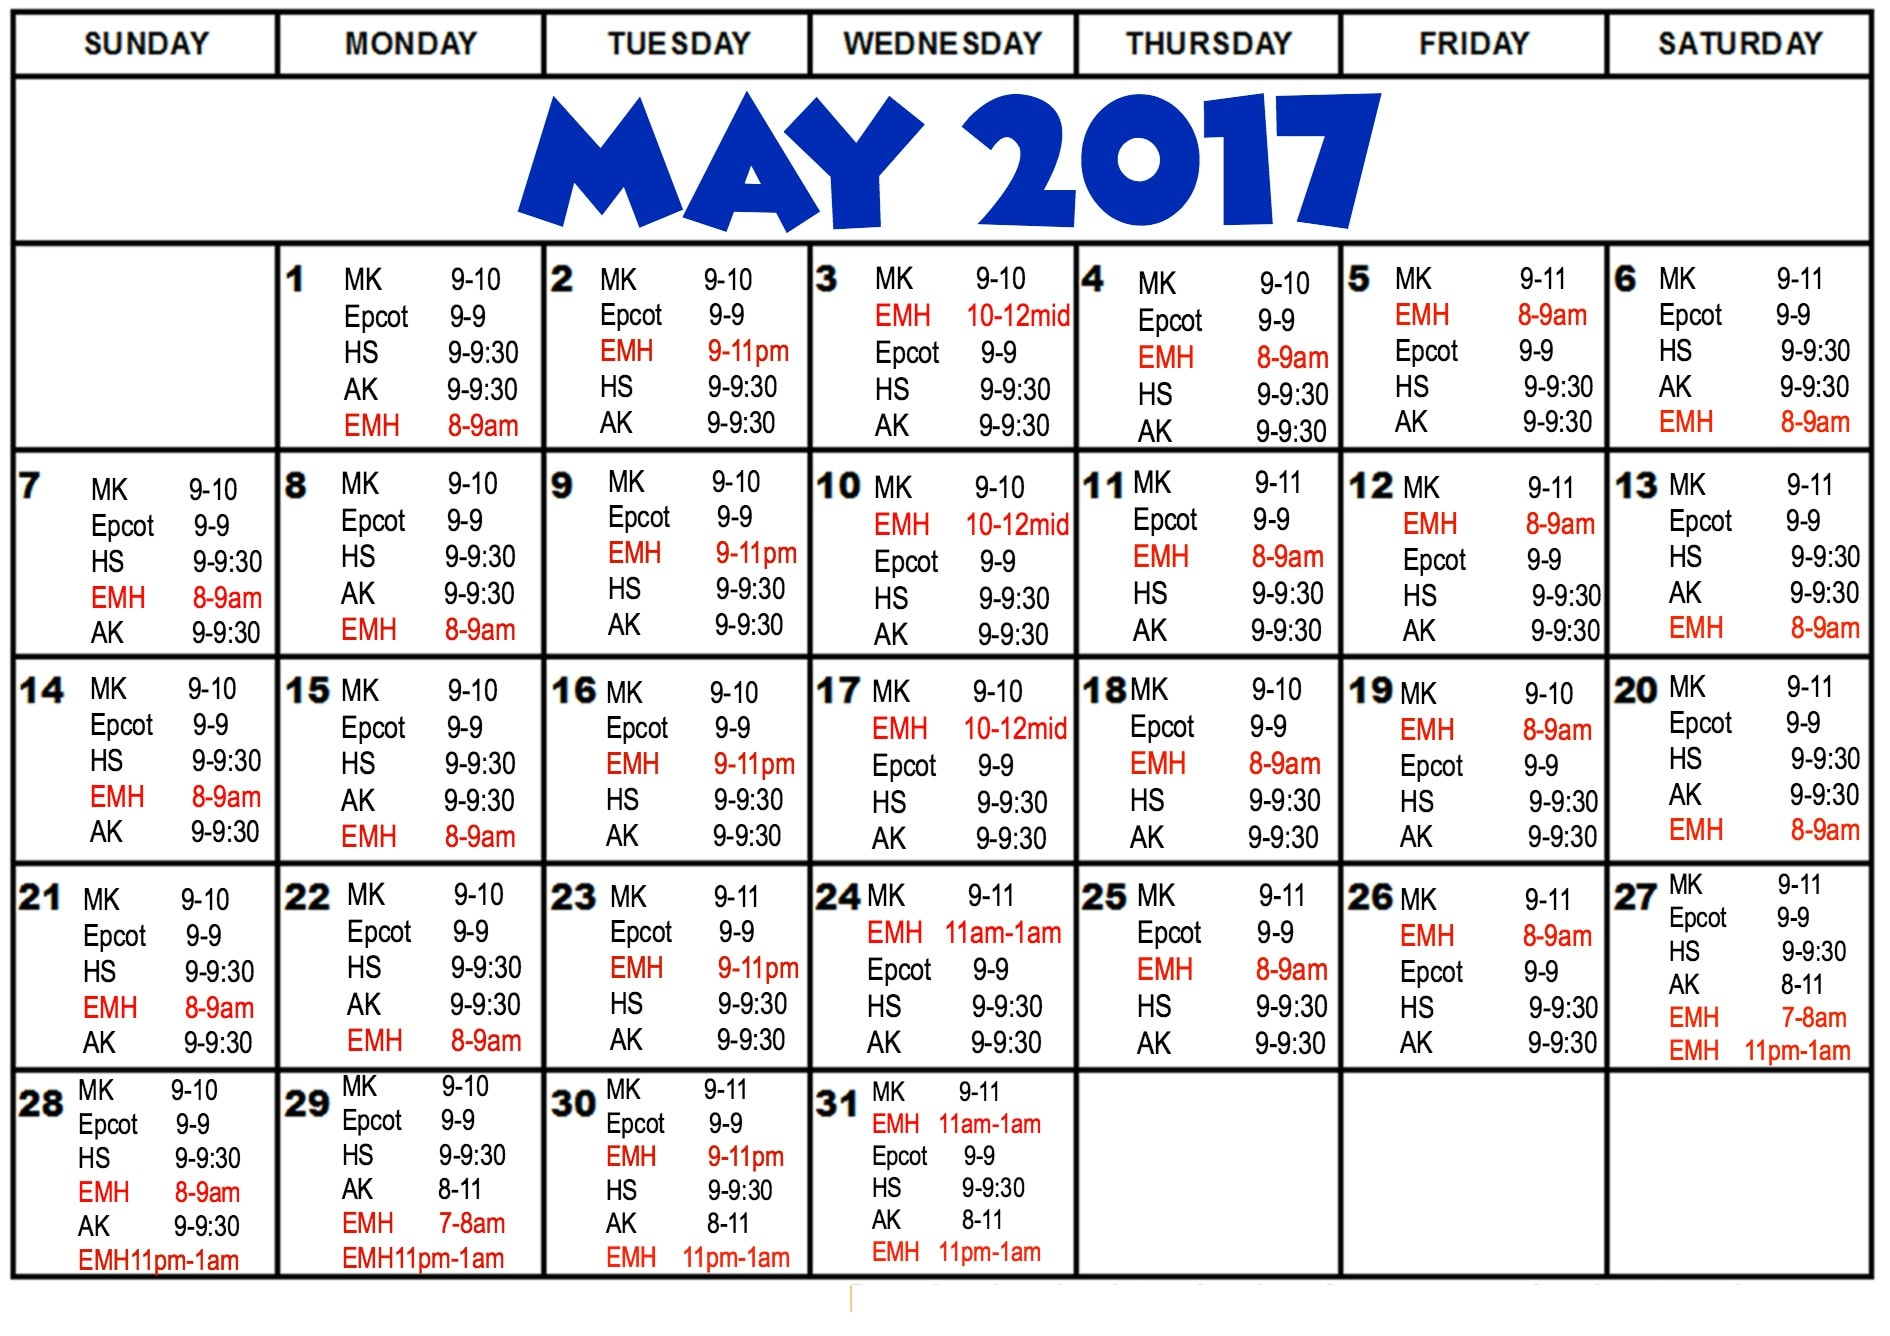 Disney World Park Hours for May 2017